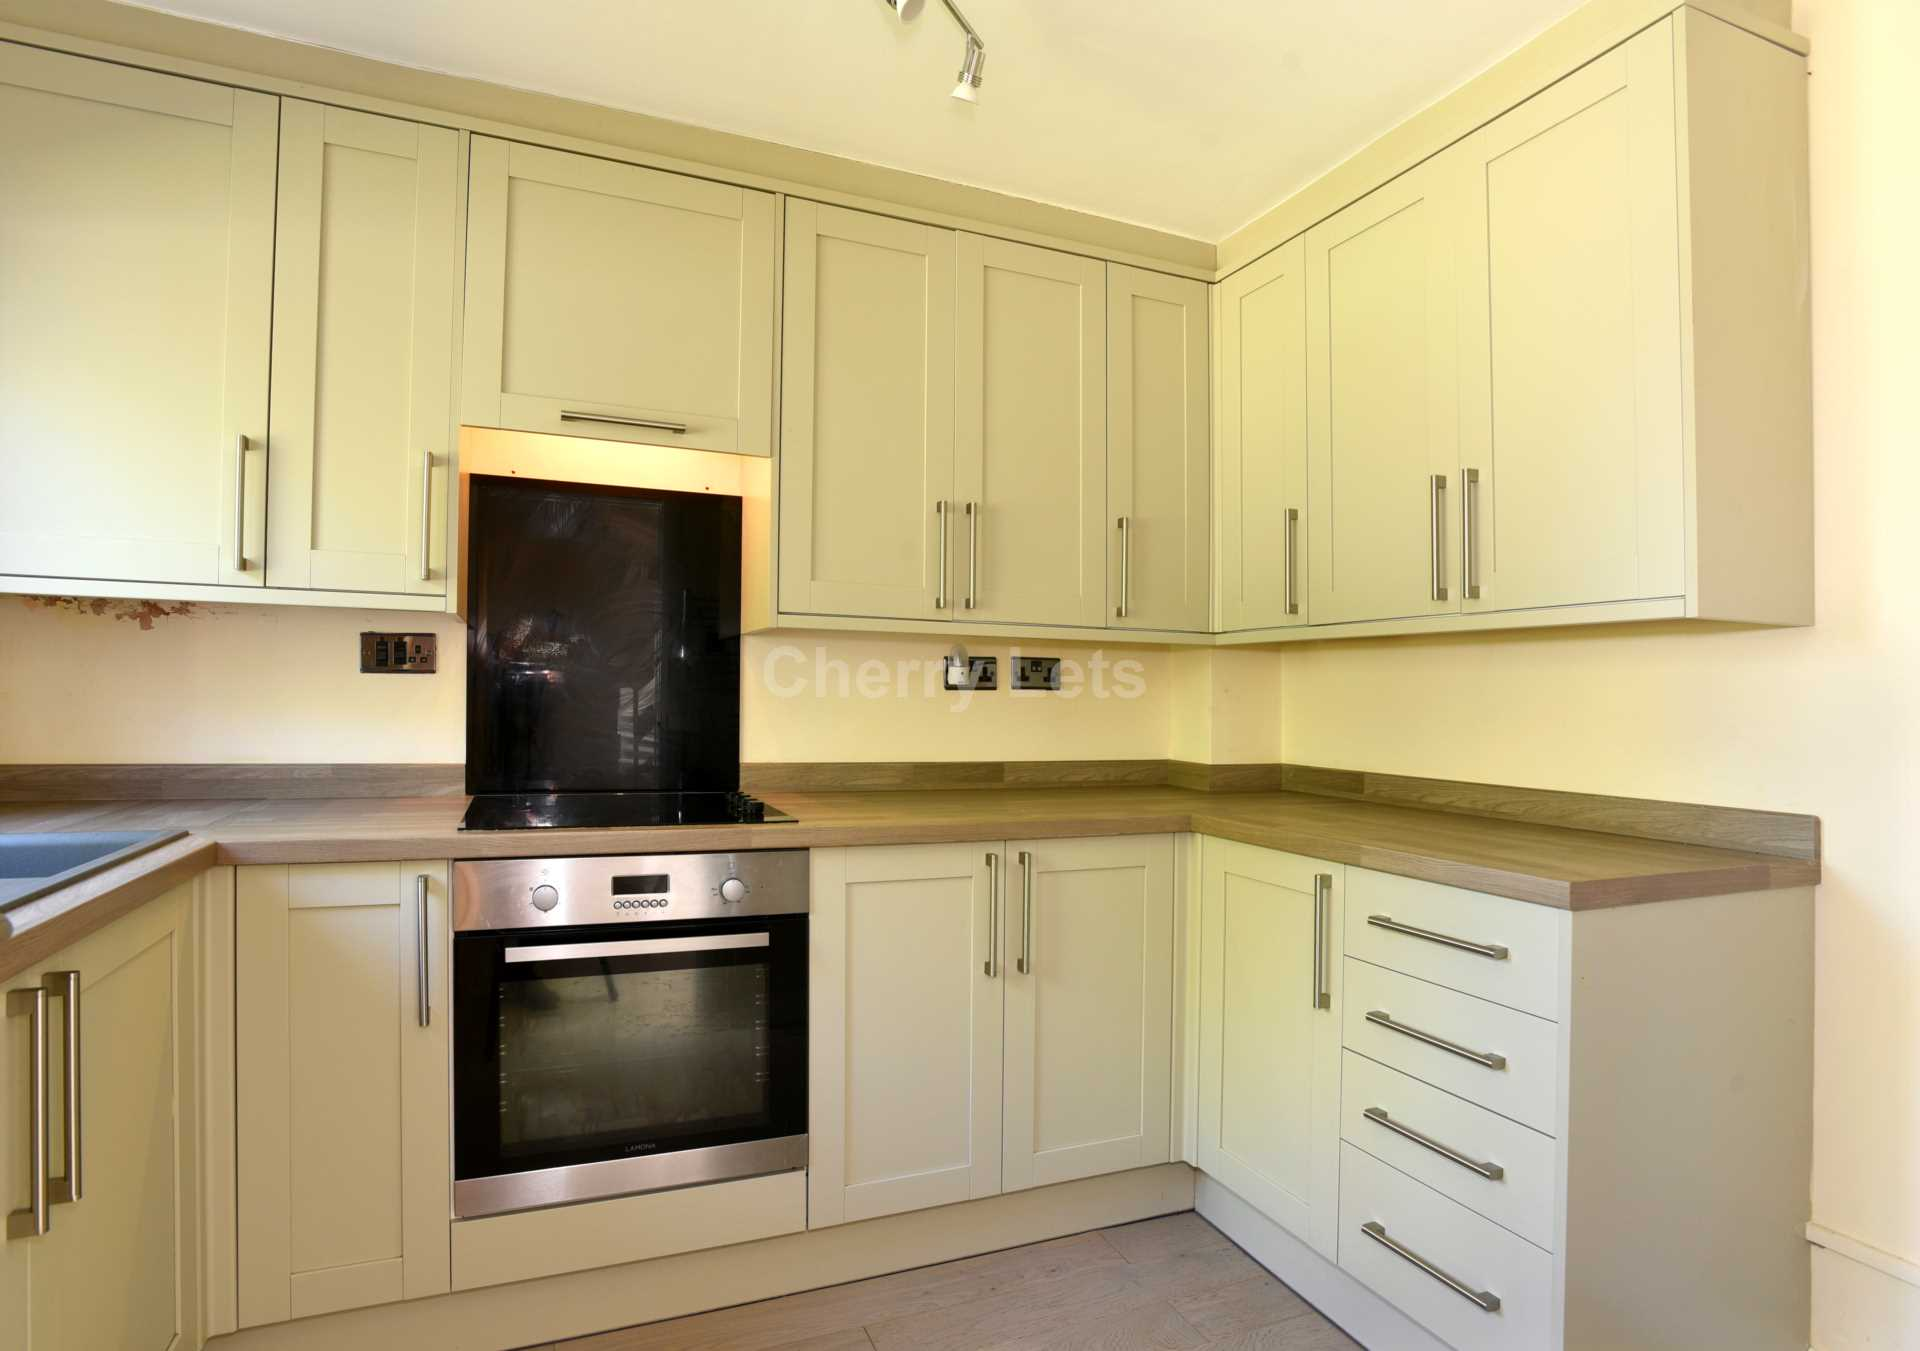 3 bed terraced house to rent in Keytes Close, Adderbury, OX17 4